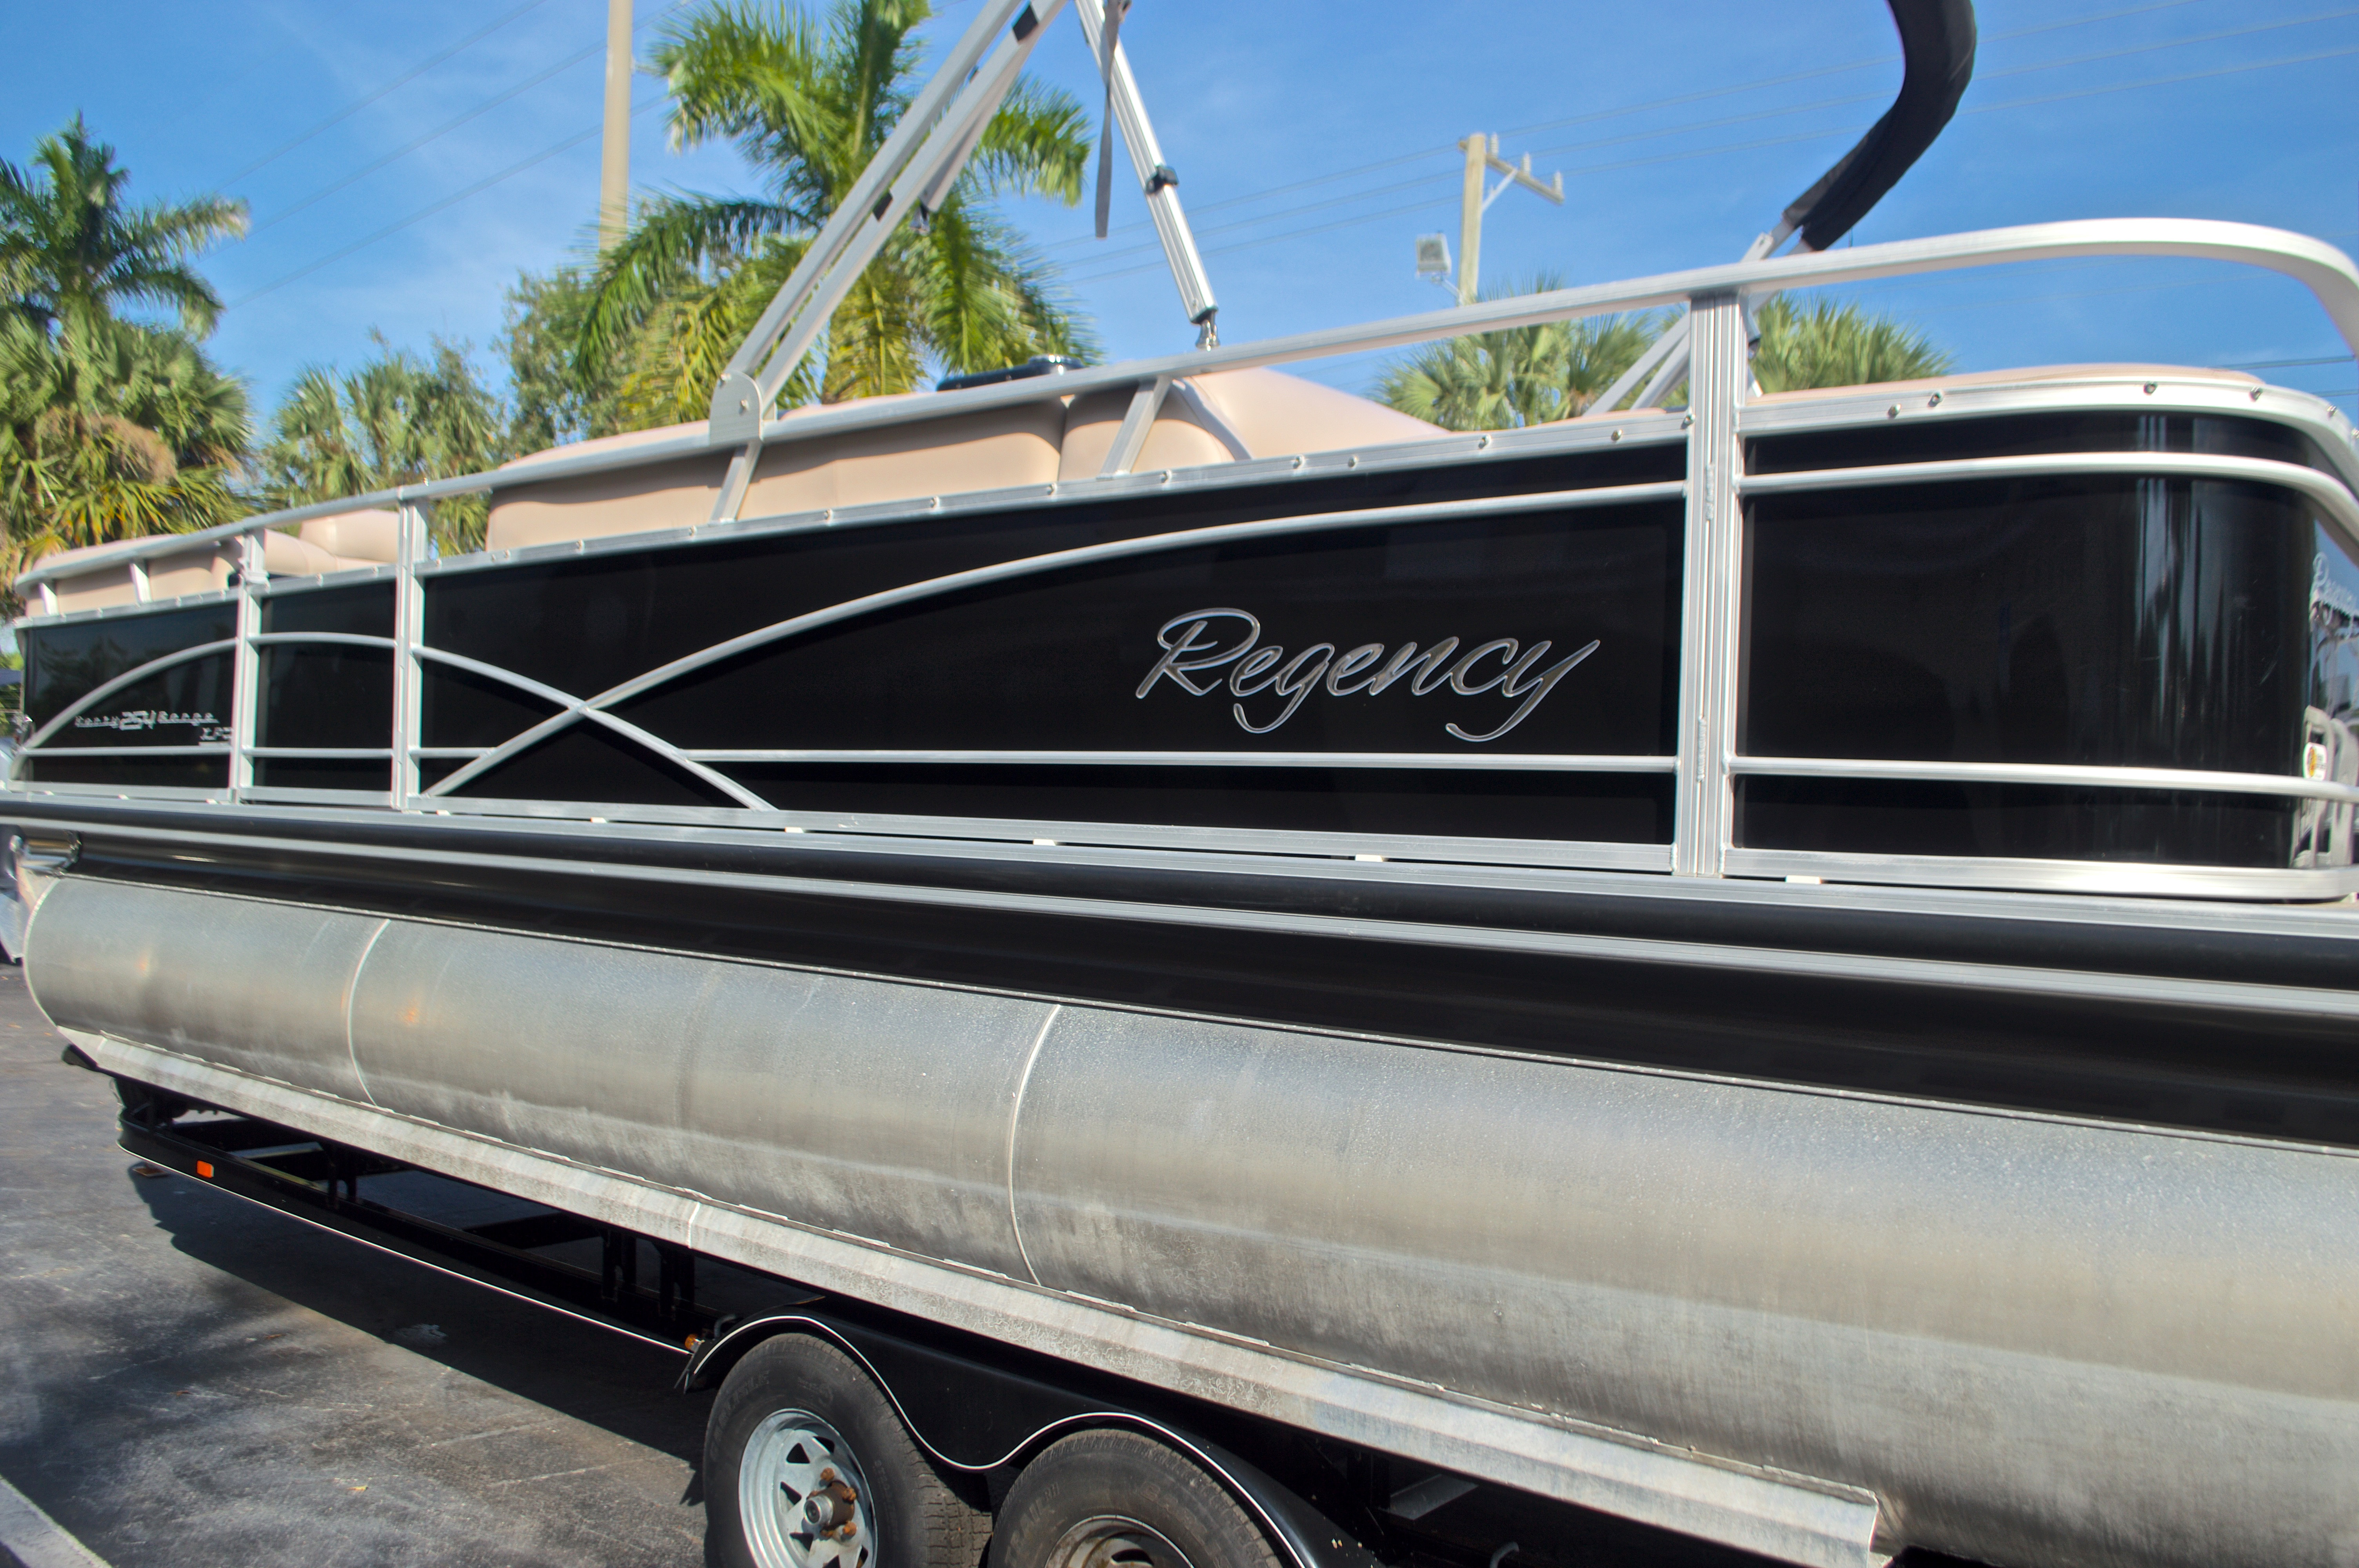 Thumbnail 7 for Used 2014 Regency Party Barge 254 XP3 boat for sale in West Palm Beach, FL